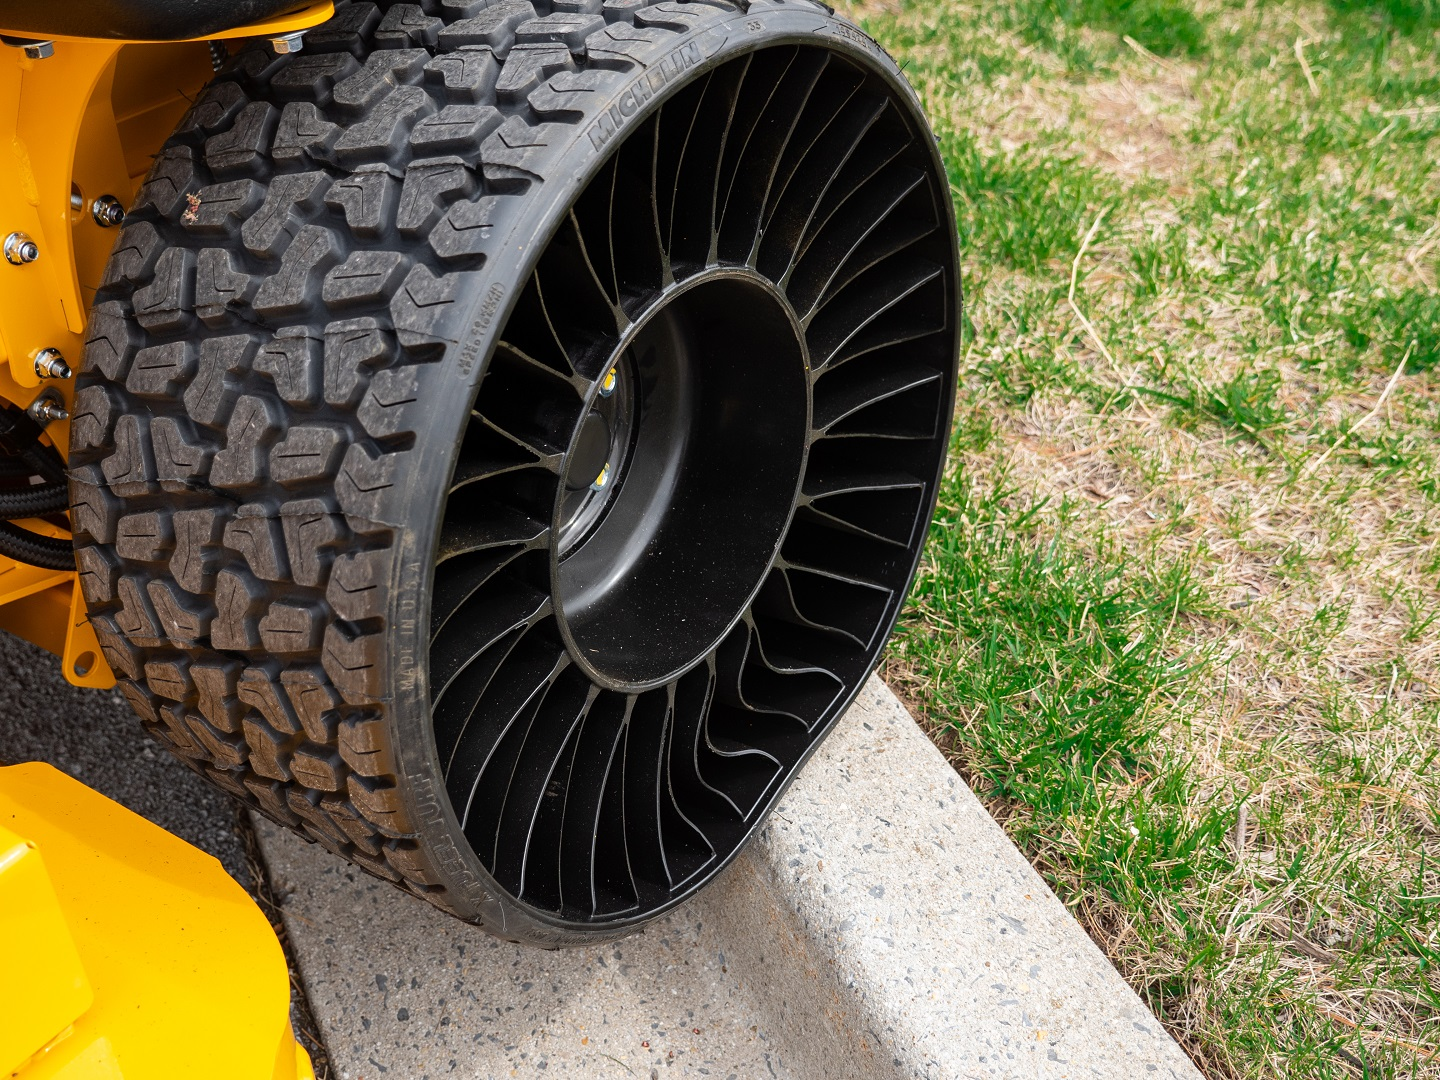 michelin tweel tire front angle view